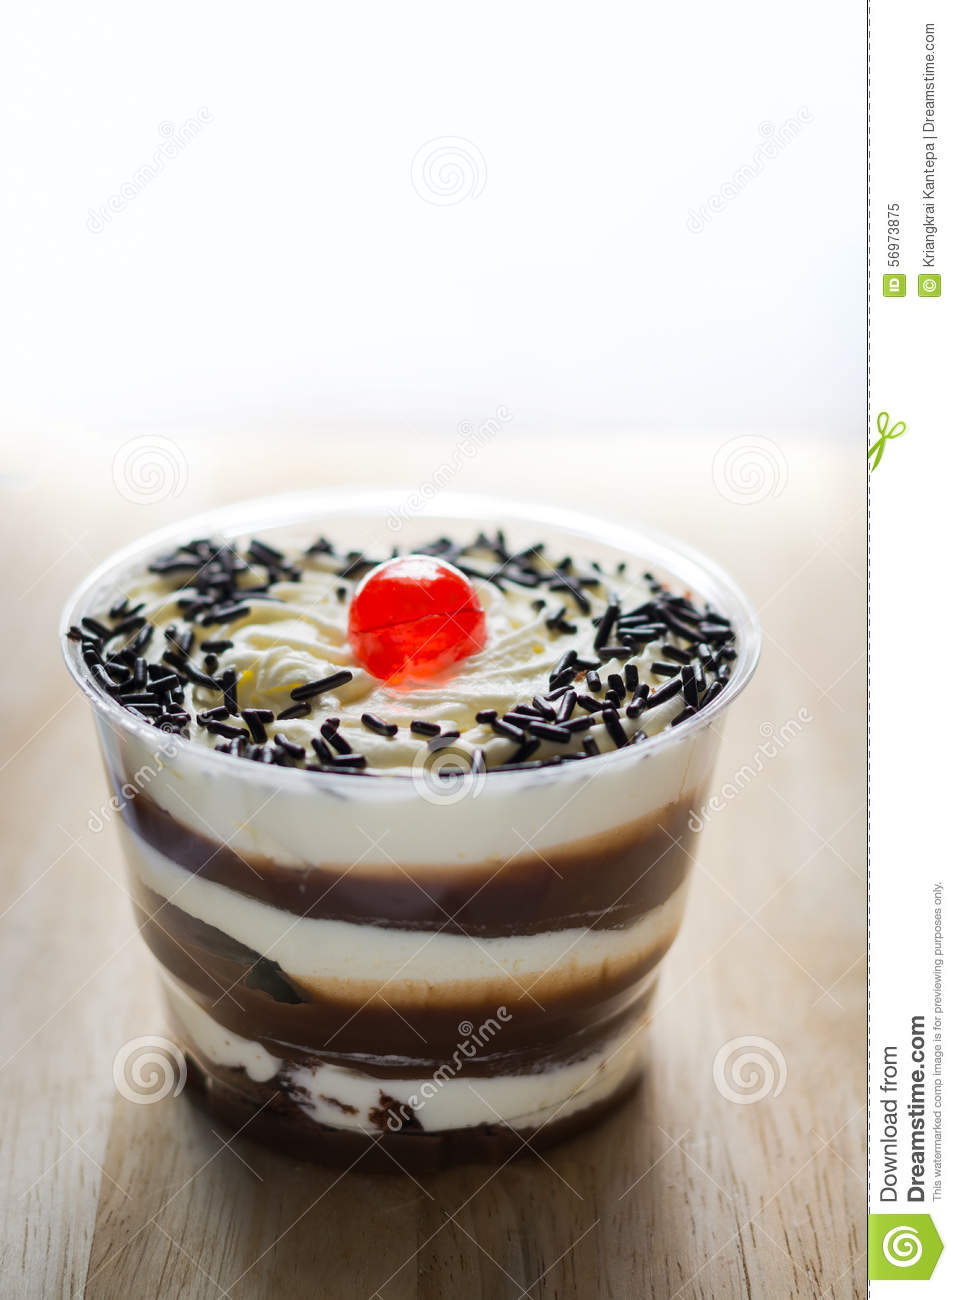 Decorating Plastic Tumblers Cake Of Fresh Milk In Plastic Cups Delicious Decorated With Whip